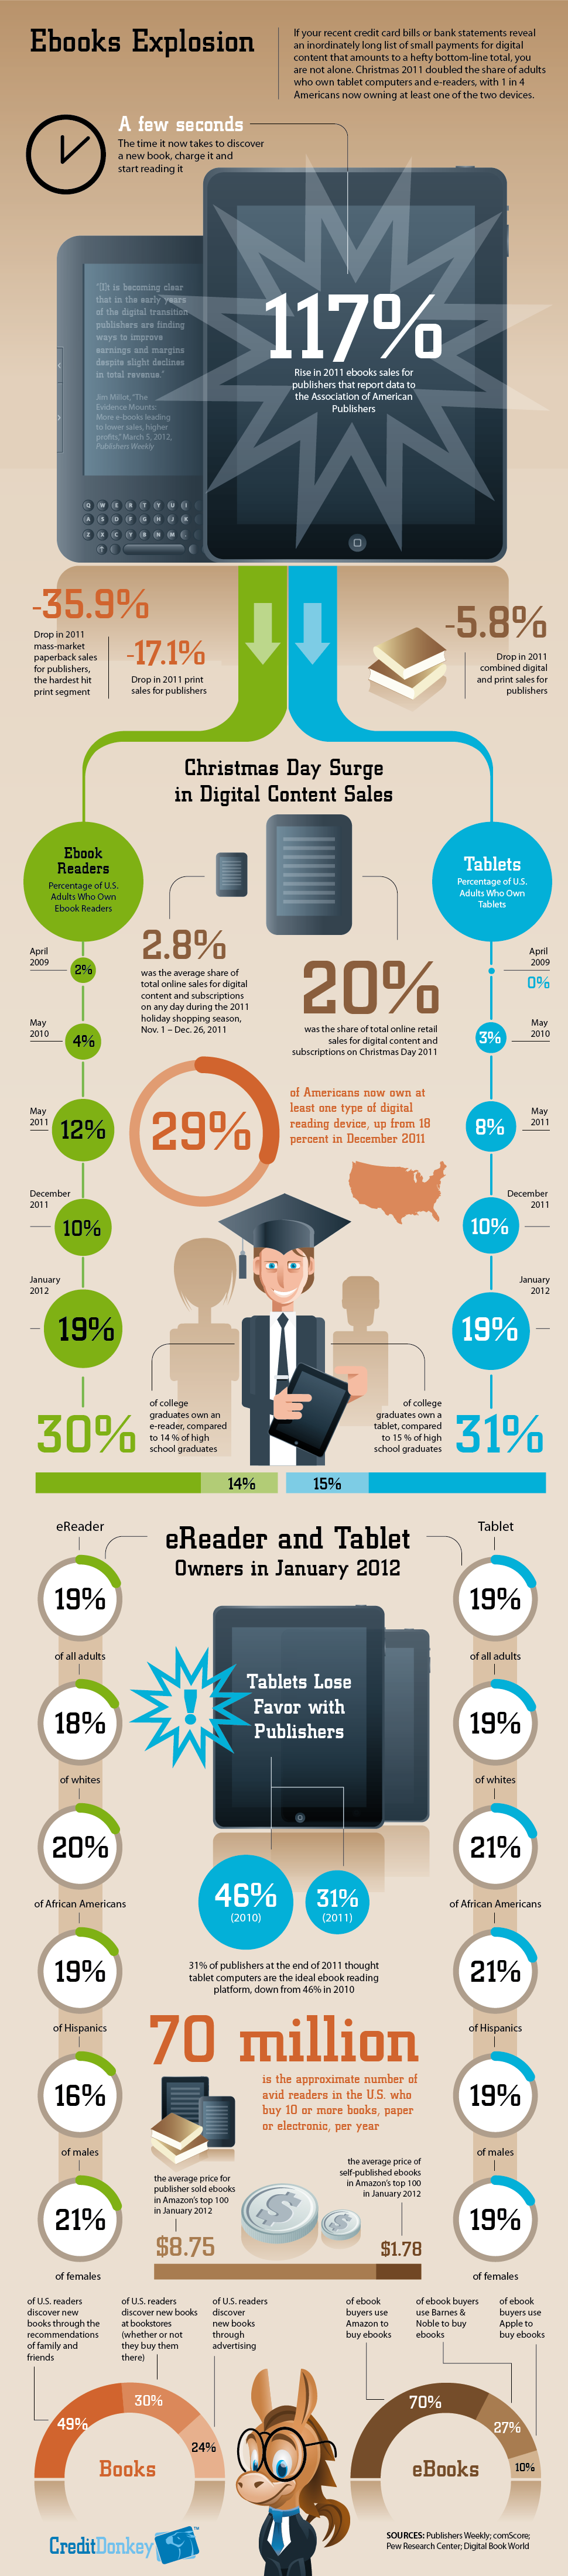 Infographics: eBooks Growth © CreditDonkey